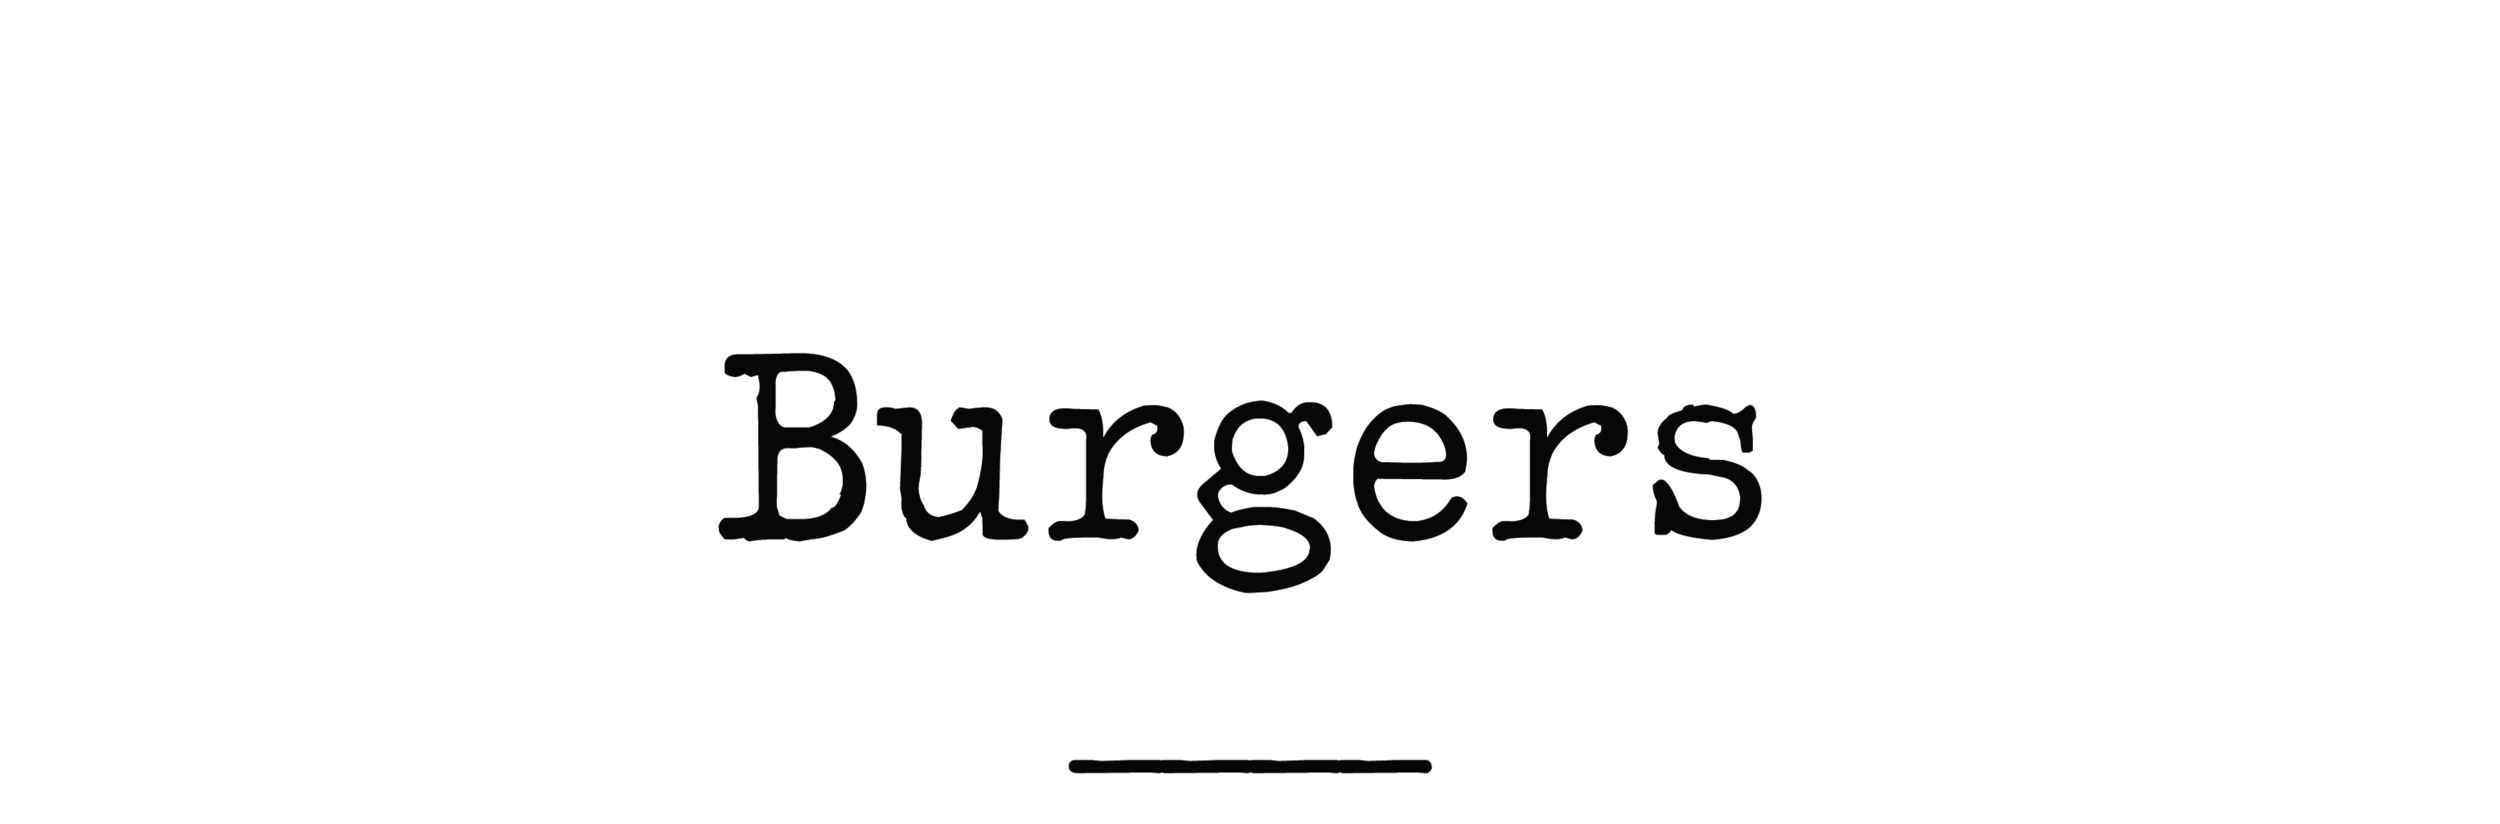 burgers.png